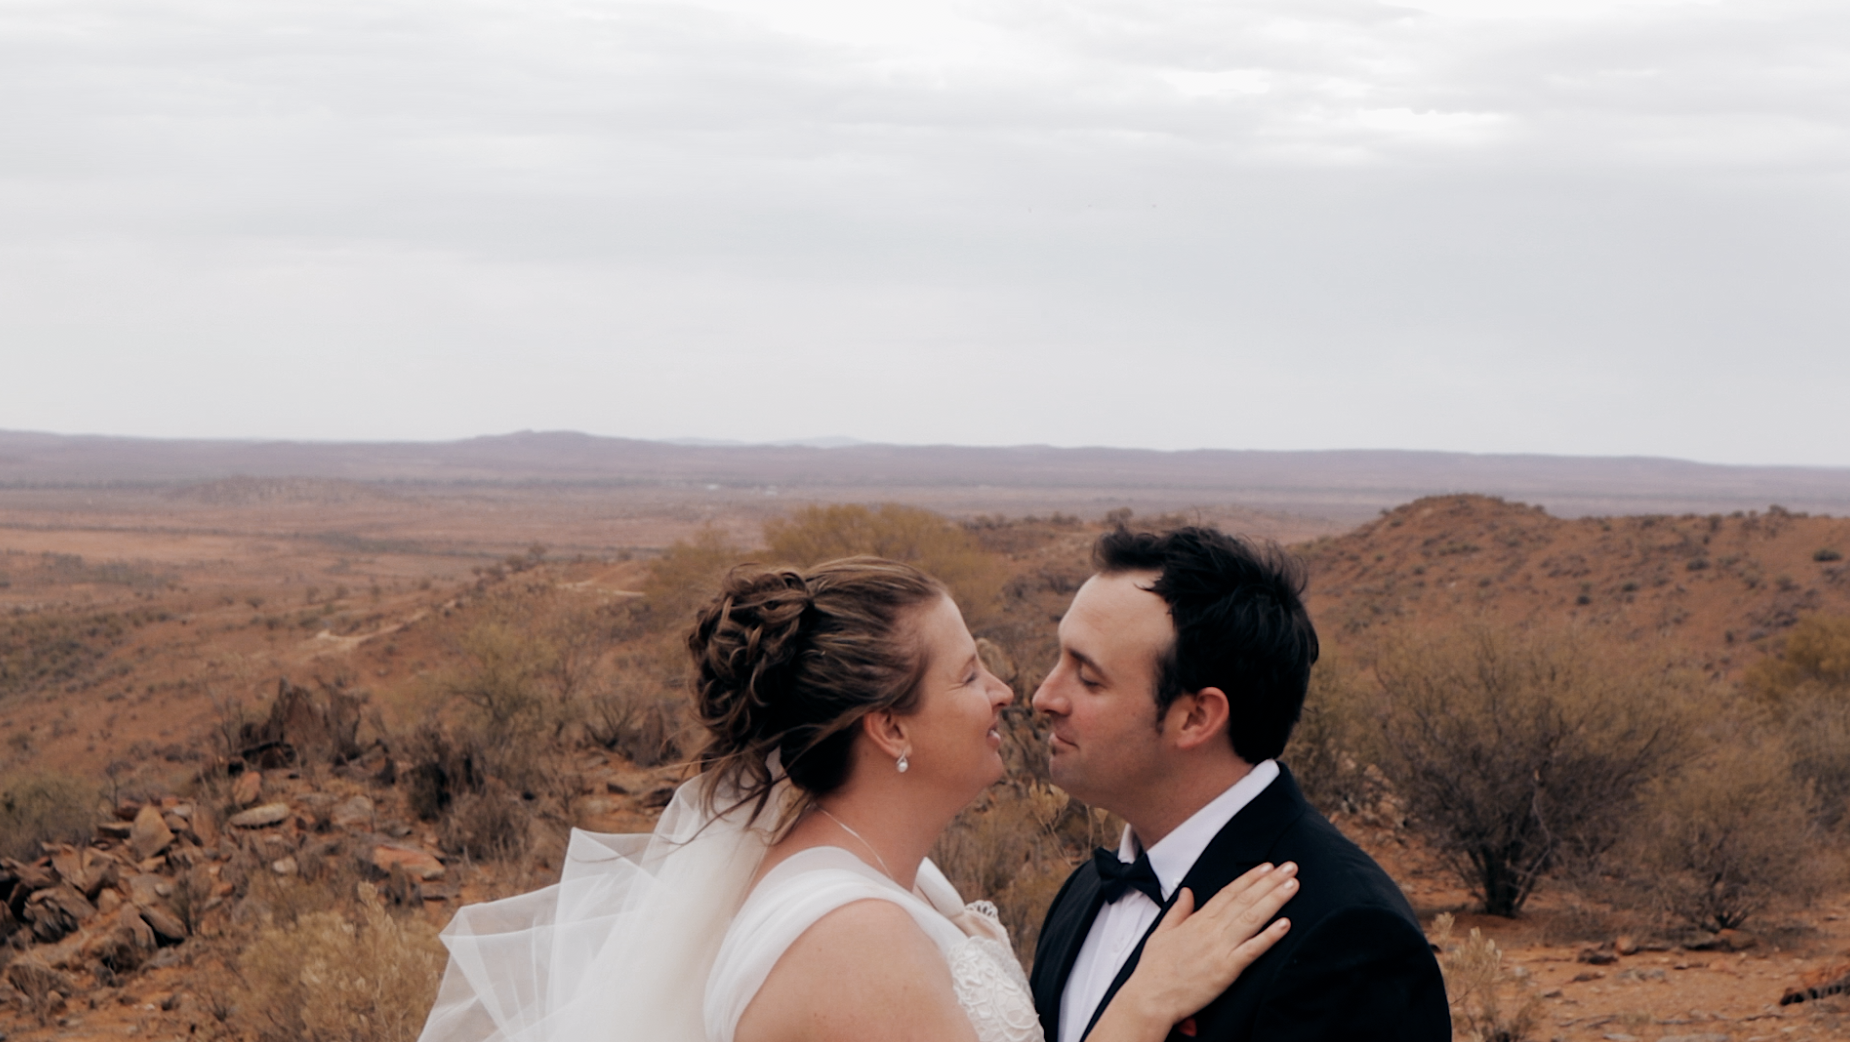 Danielle + Brad | Broken Hill, Australia | The Old Dairy